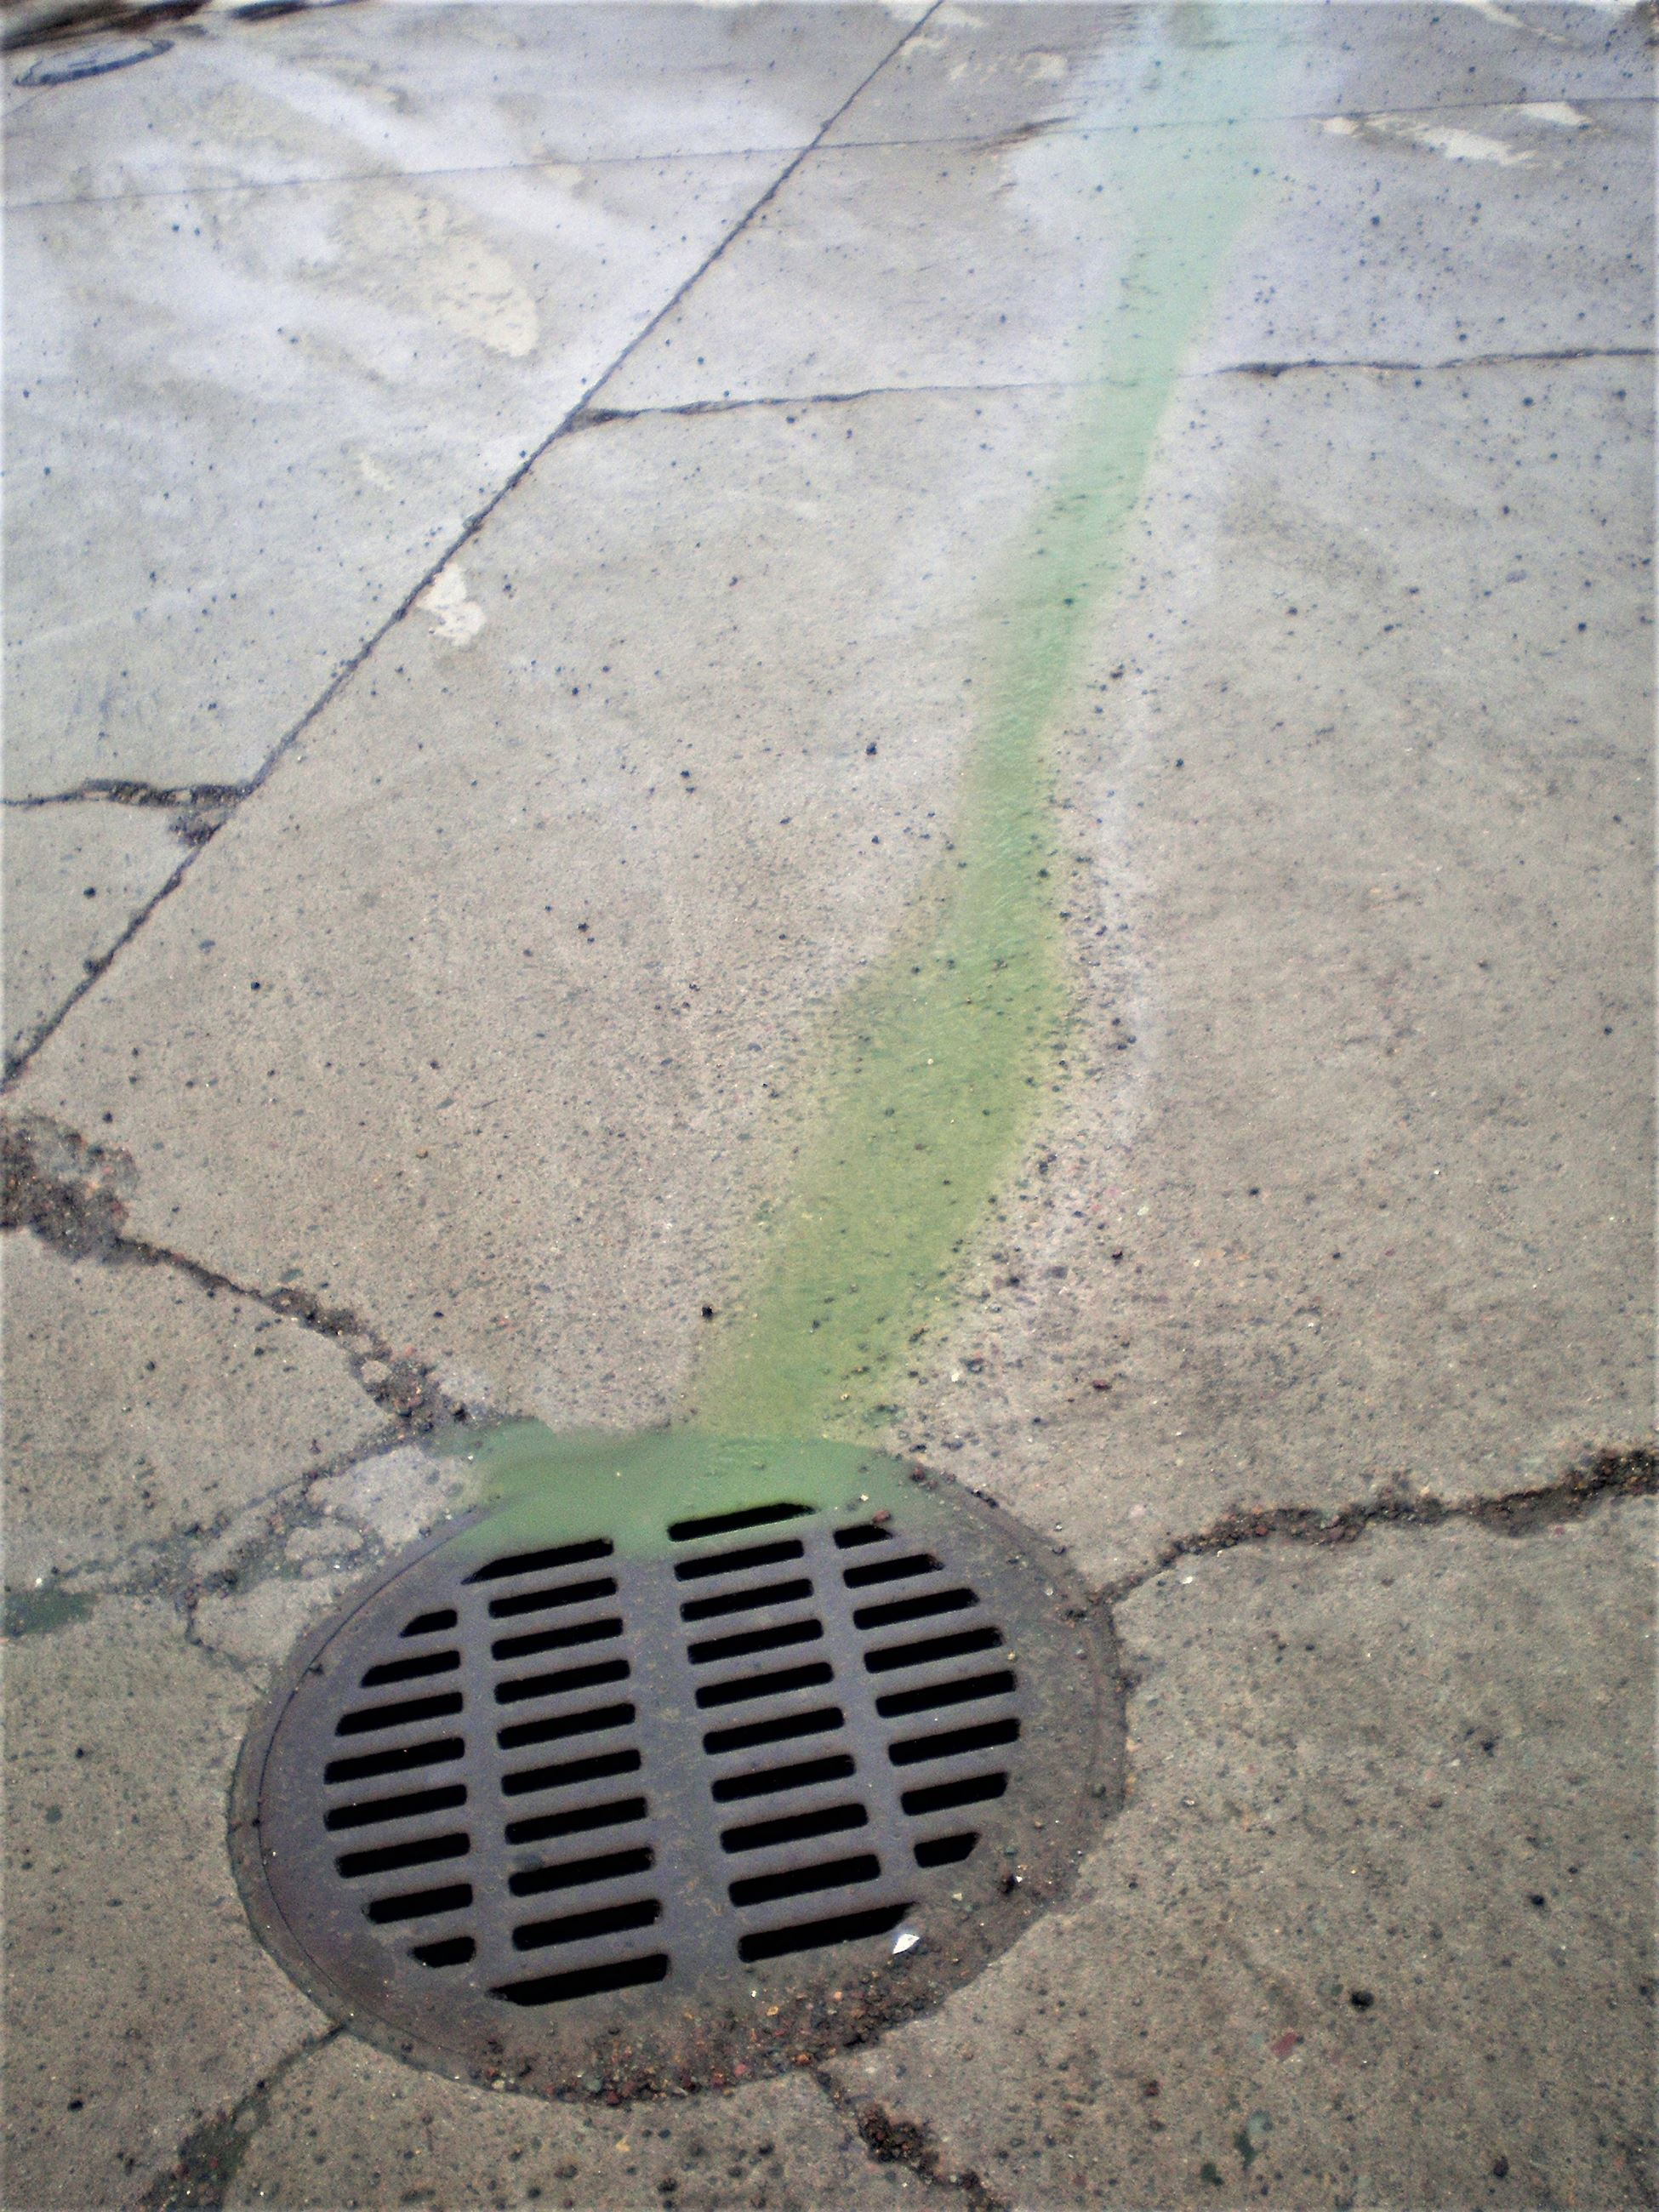 Green pollution running down storm drain